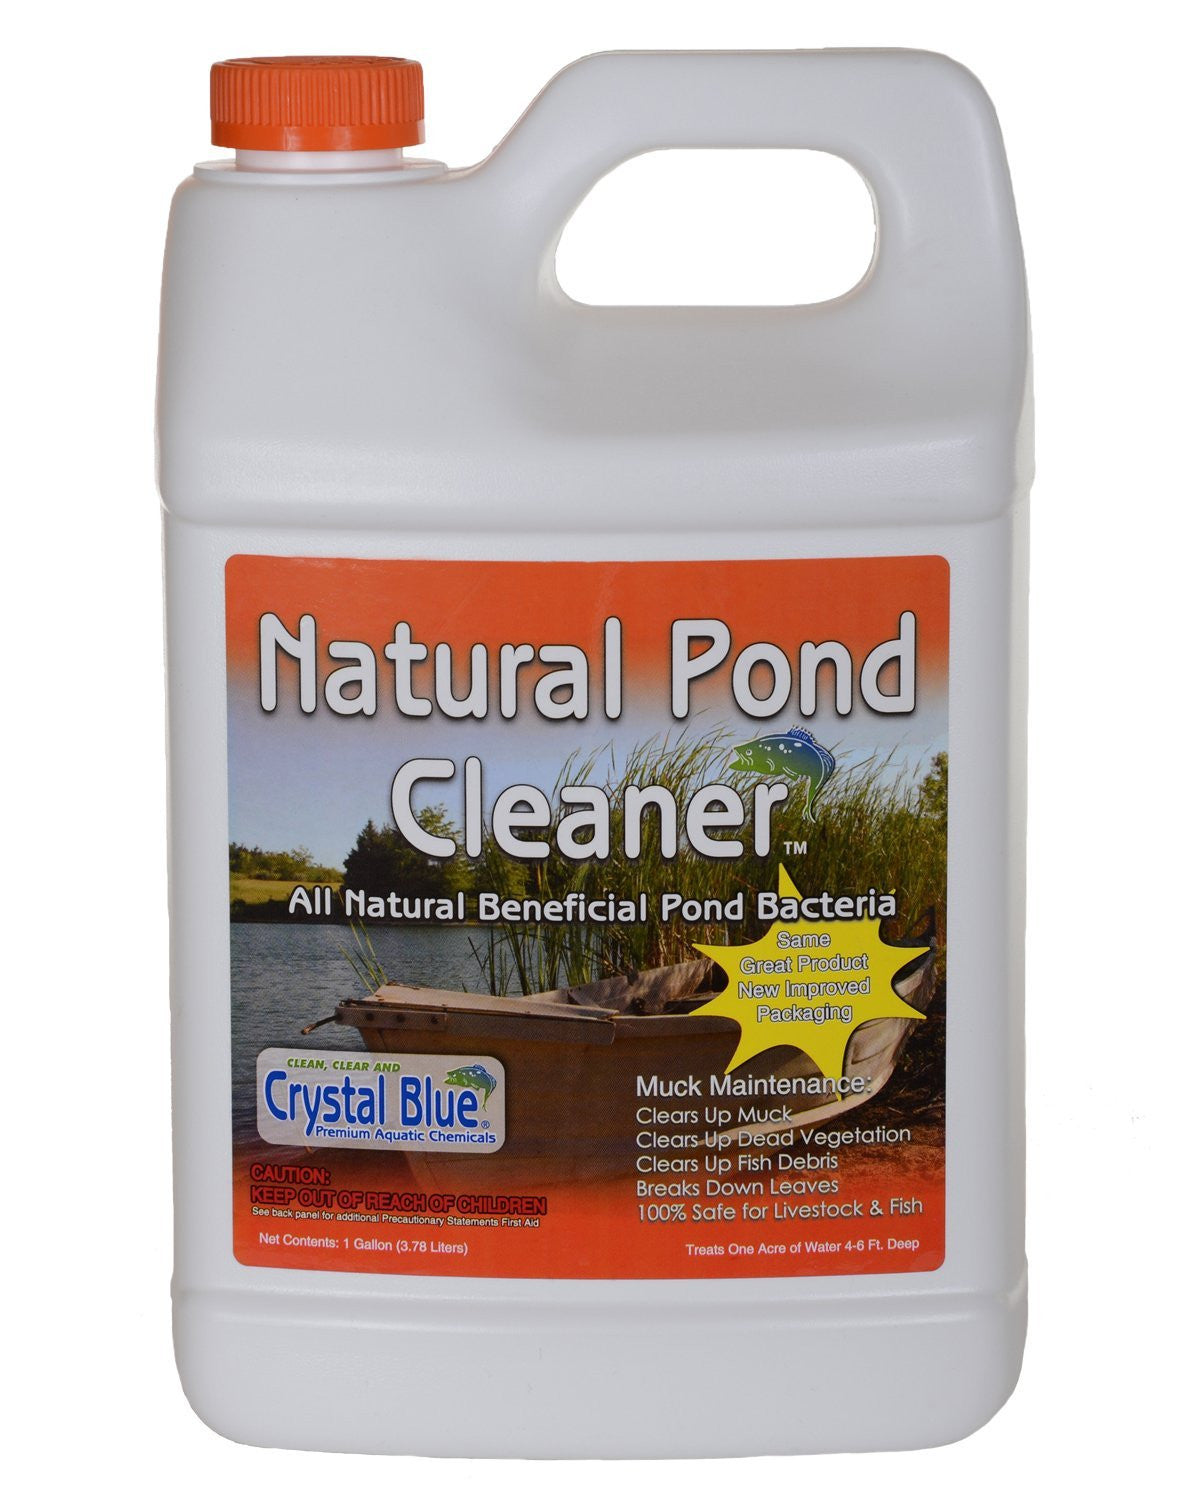 Sanco Crystal Blue Natural Pond Cleaner, 1 Gallon